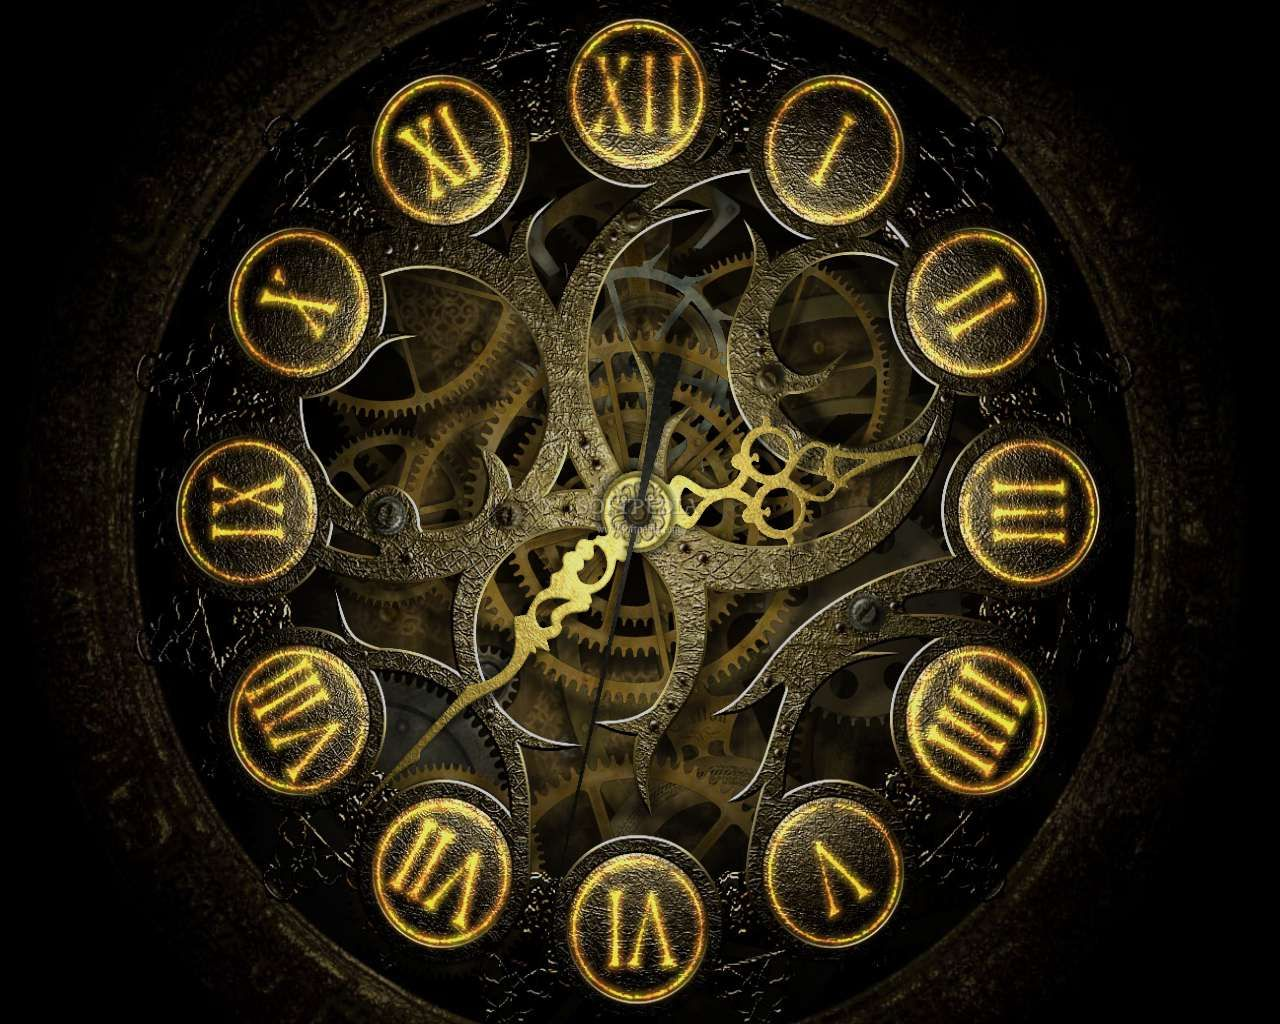 Broken clock wallpaper  To live…to live would be an awfully big adventure."